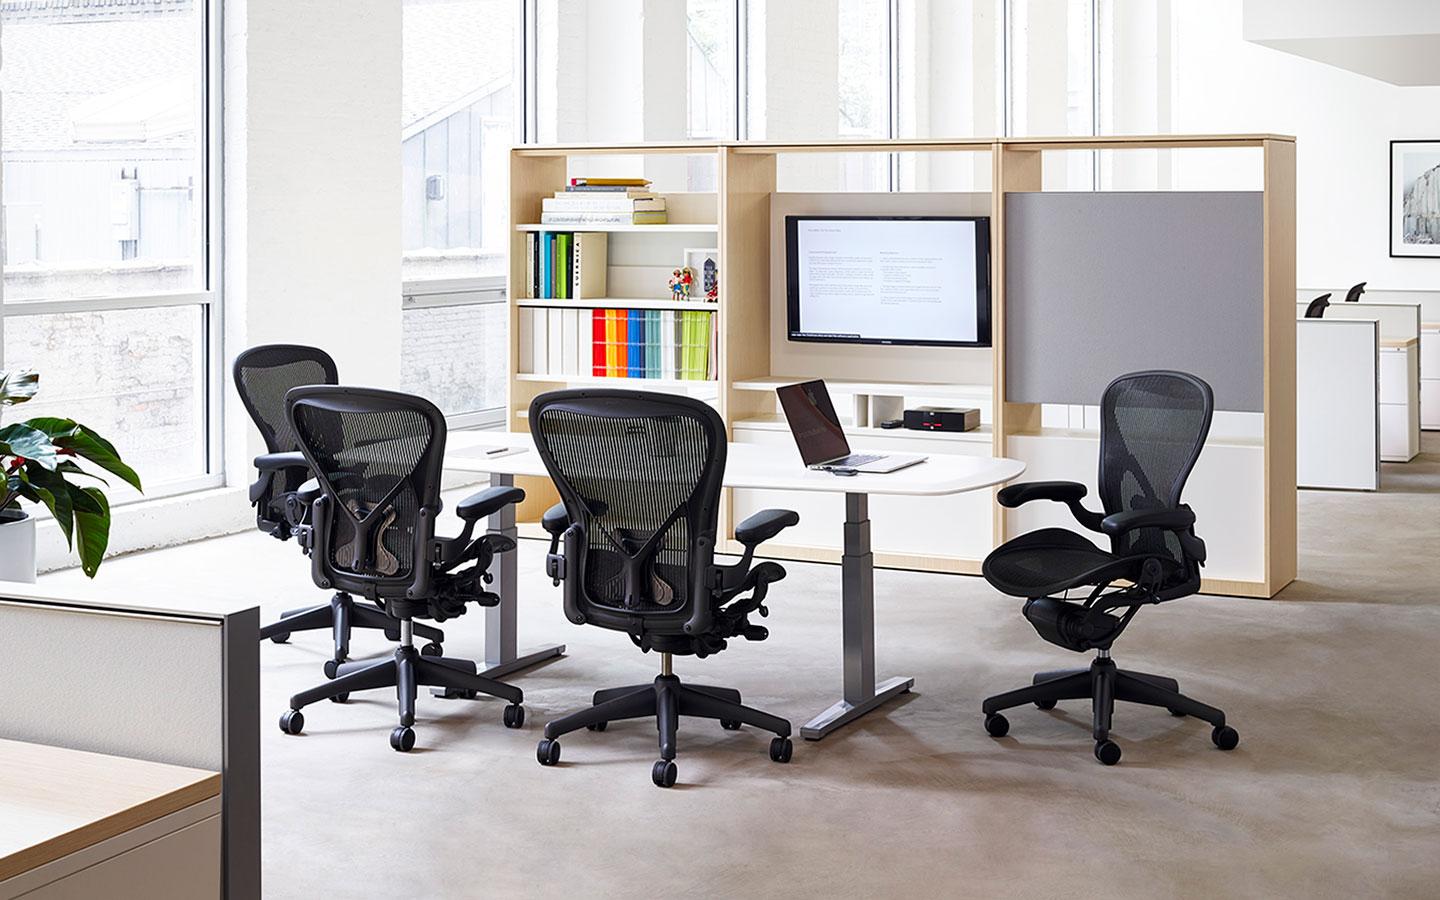 Aeron Aluminum Chairs - aeron-conference-room_Amazing Aeron Aluminum Chairs - aeron-conference-room  Graphic_253614.jpg